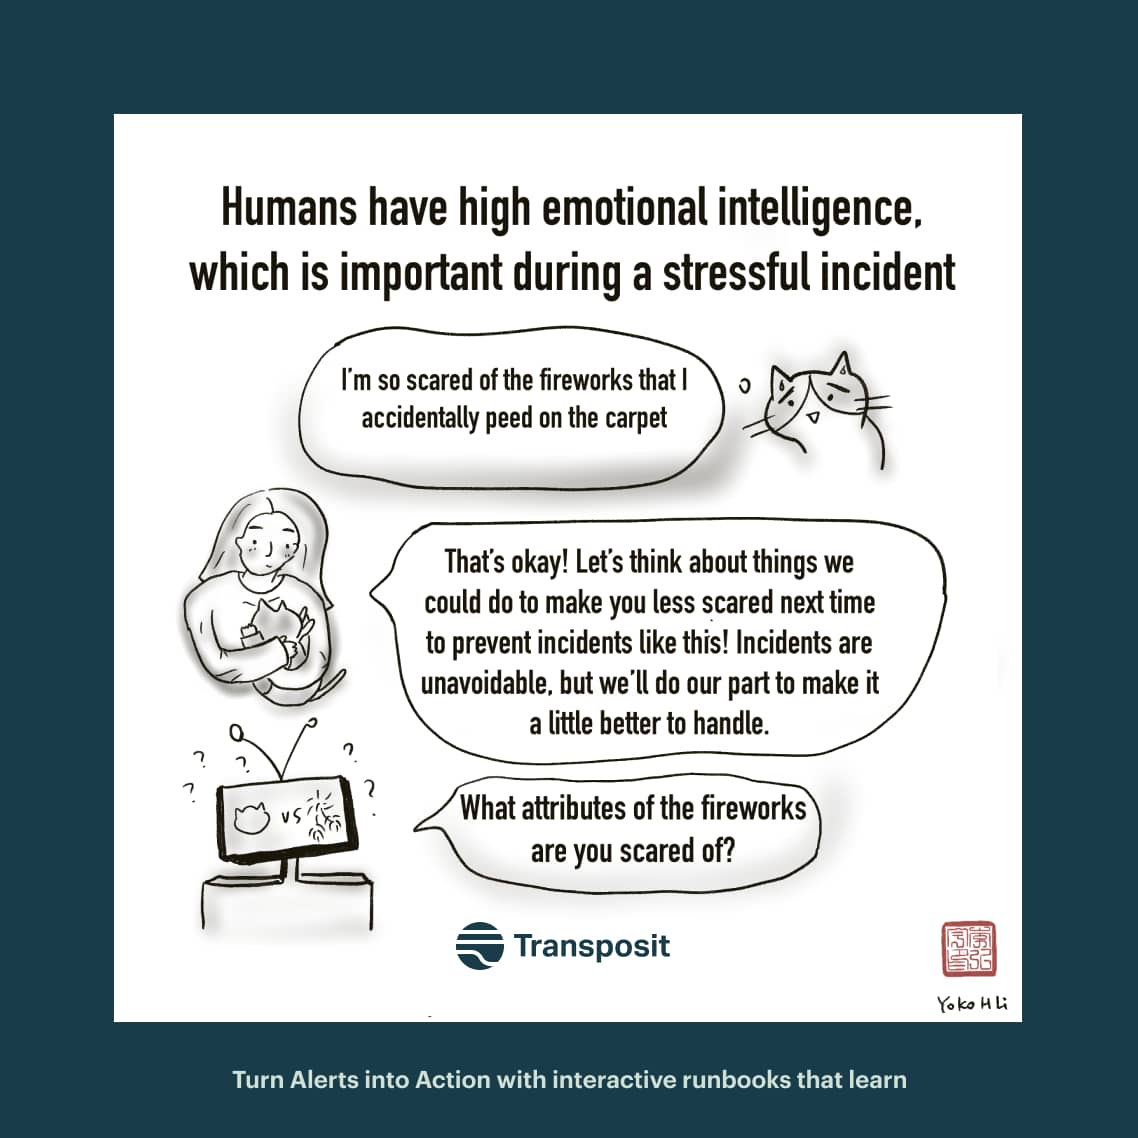 """Humans have high emotional intelligence, which is important during a stressful incident. Cat: """"I'm so scared of the fireworks that I accidentally peed on the carpet."""" Human: """"That's okay! Let's think about things we could do to make you less scared next time to prevent incidents like this! Incidents are unavoidable, but we'll do our part to make it a little better to handle."""" Robot:""""What attributes of the fireworks are you scared of?"""""""